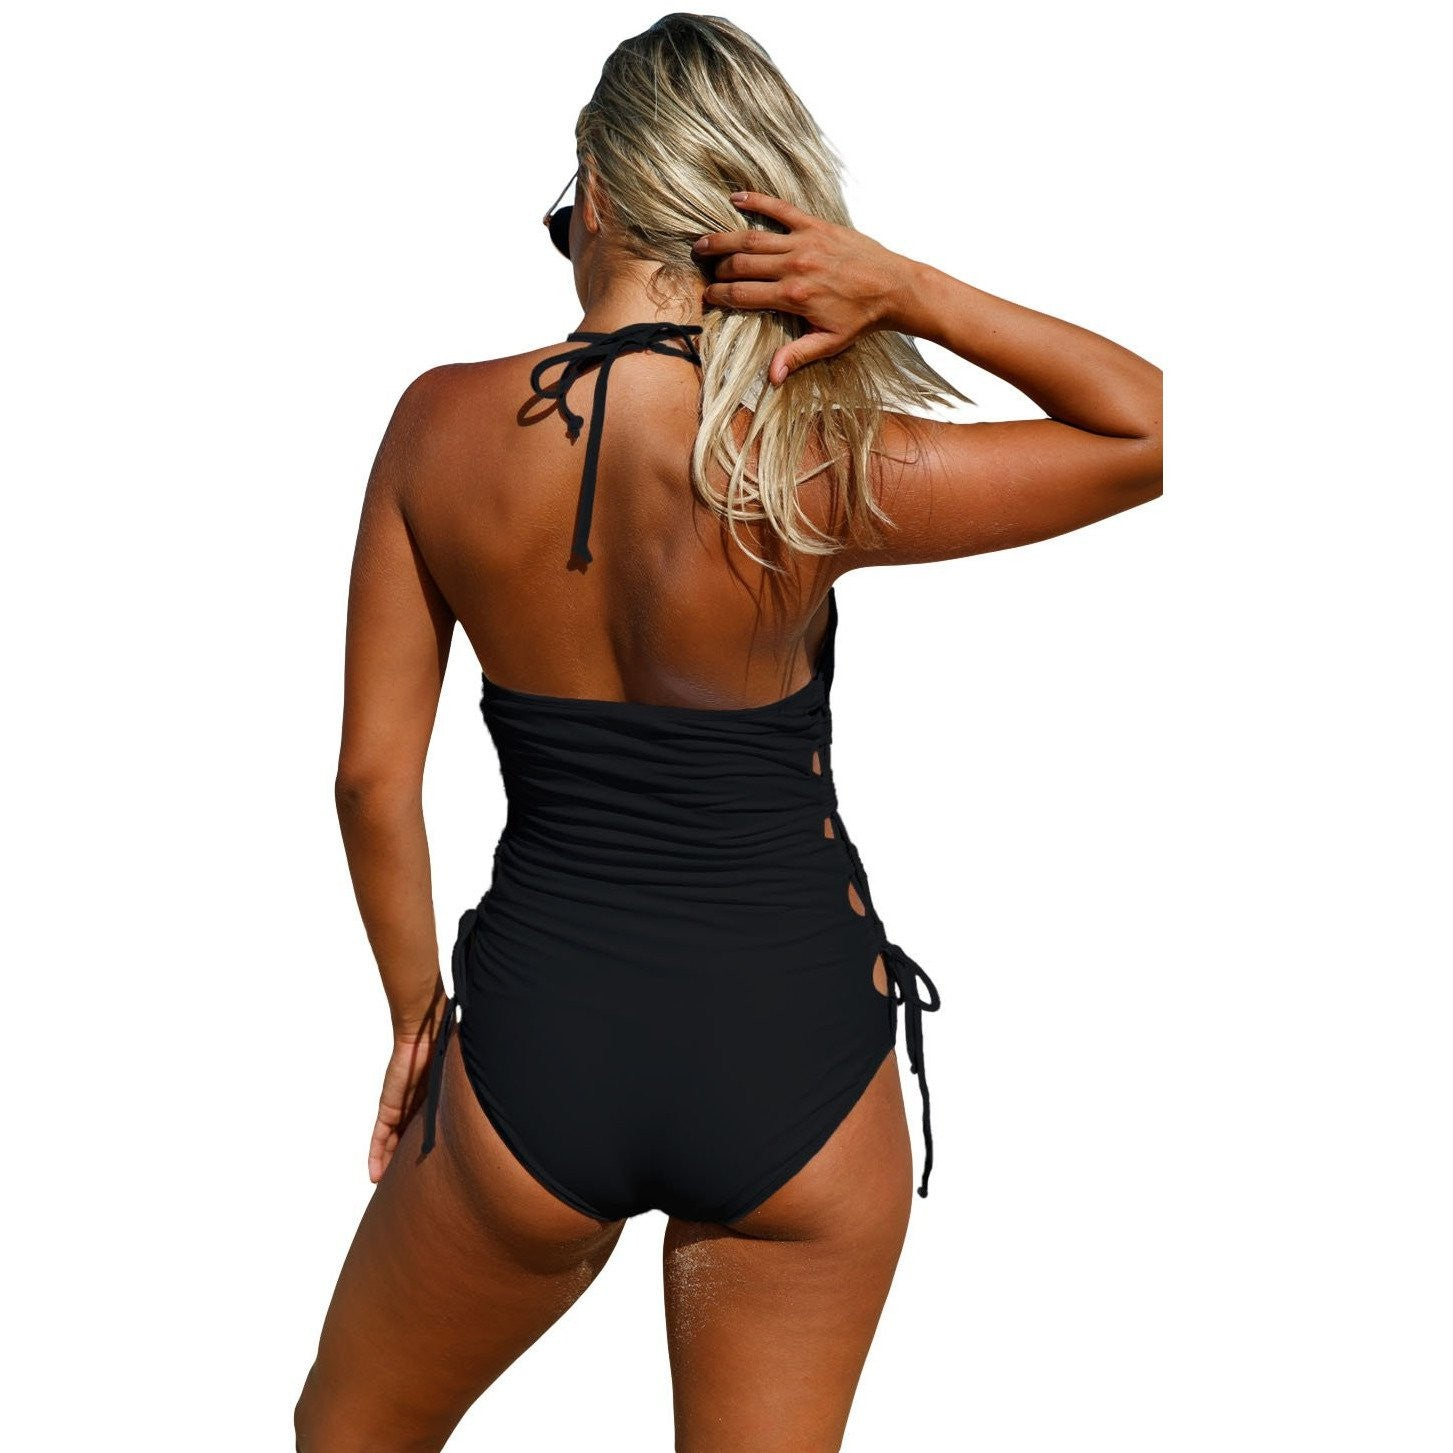 KELLIPS Black Halter Neck Monokini Swimwear - KELLIPS